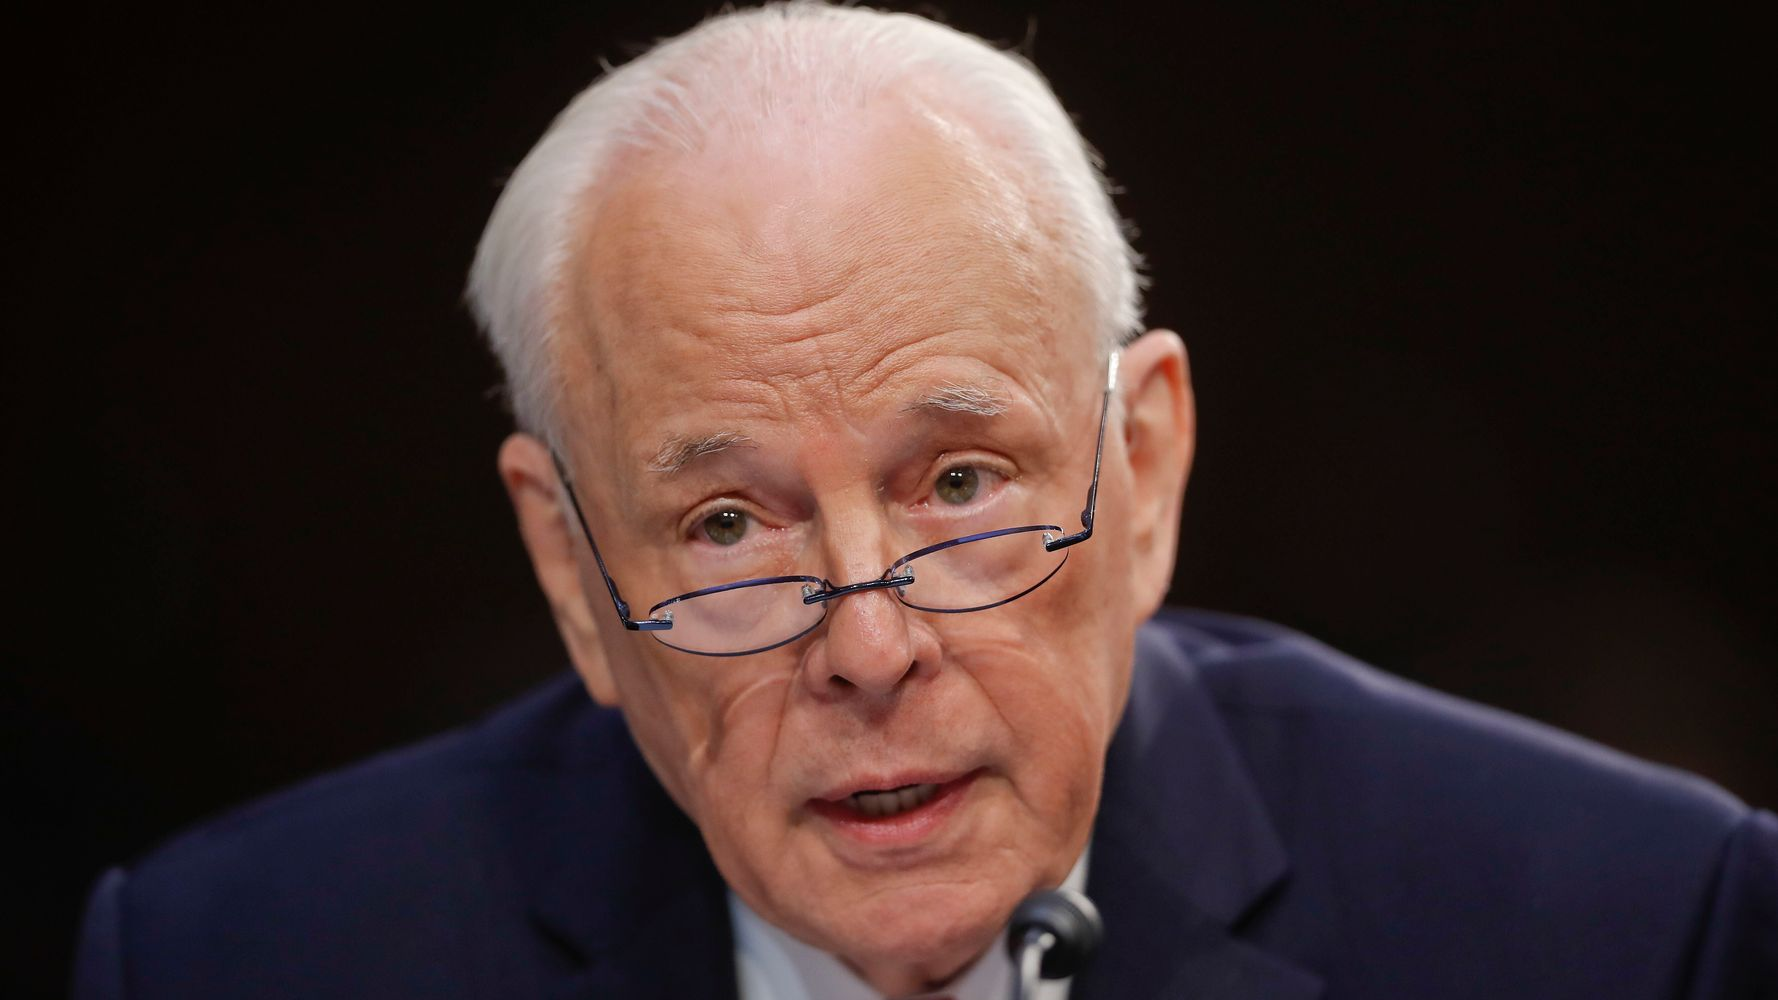 Trump's Defense Brief Is So Weak He Likely Dictated Parts Himself, John Dean Suspects